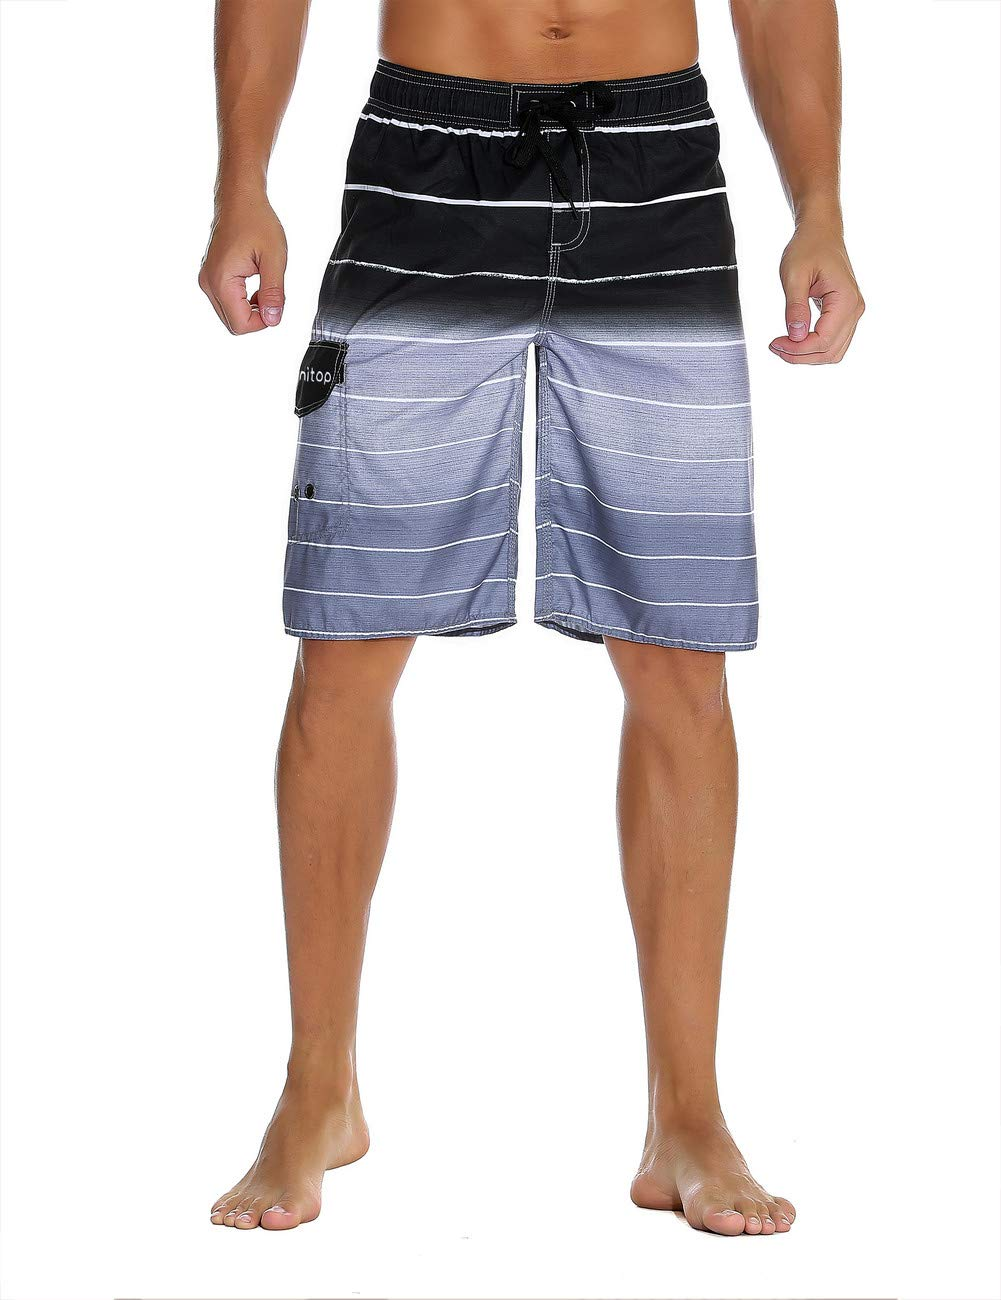 unitop Men's Colortful striped Swim Trunks Bathing Beach Board Shorts With Lining Gray-32